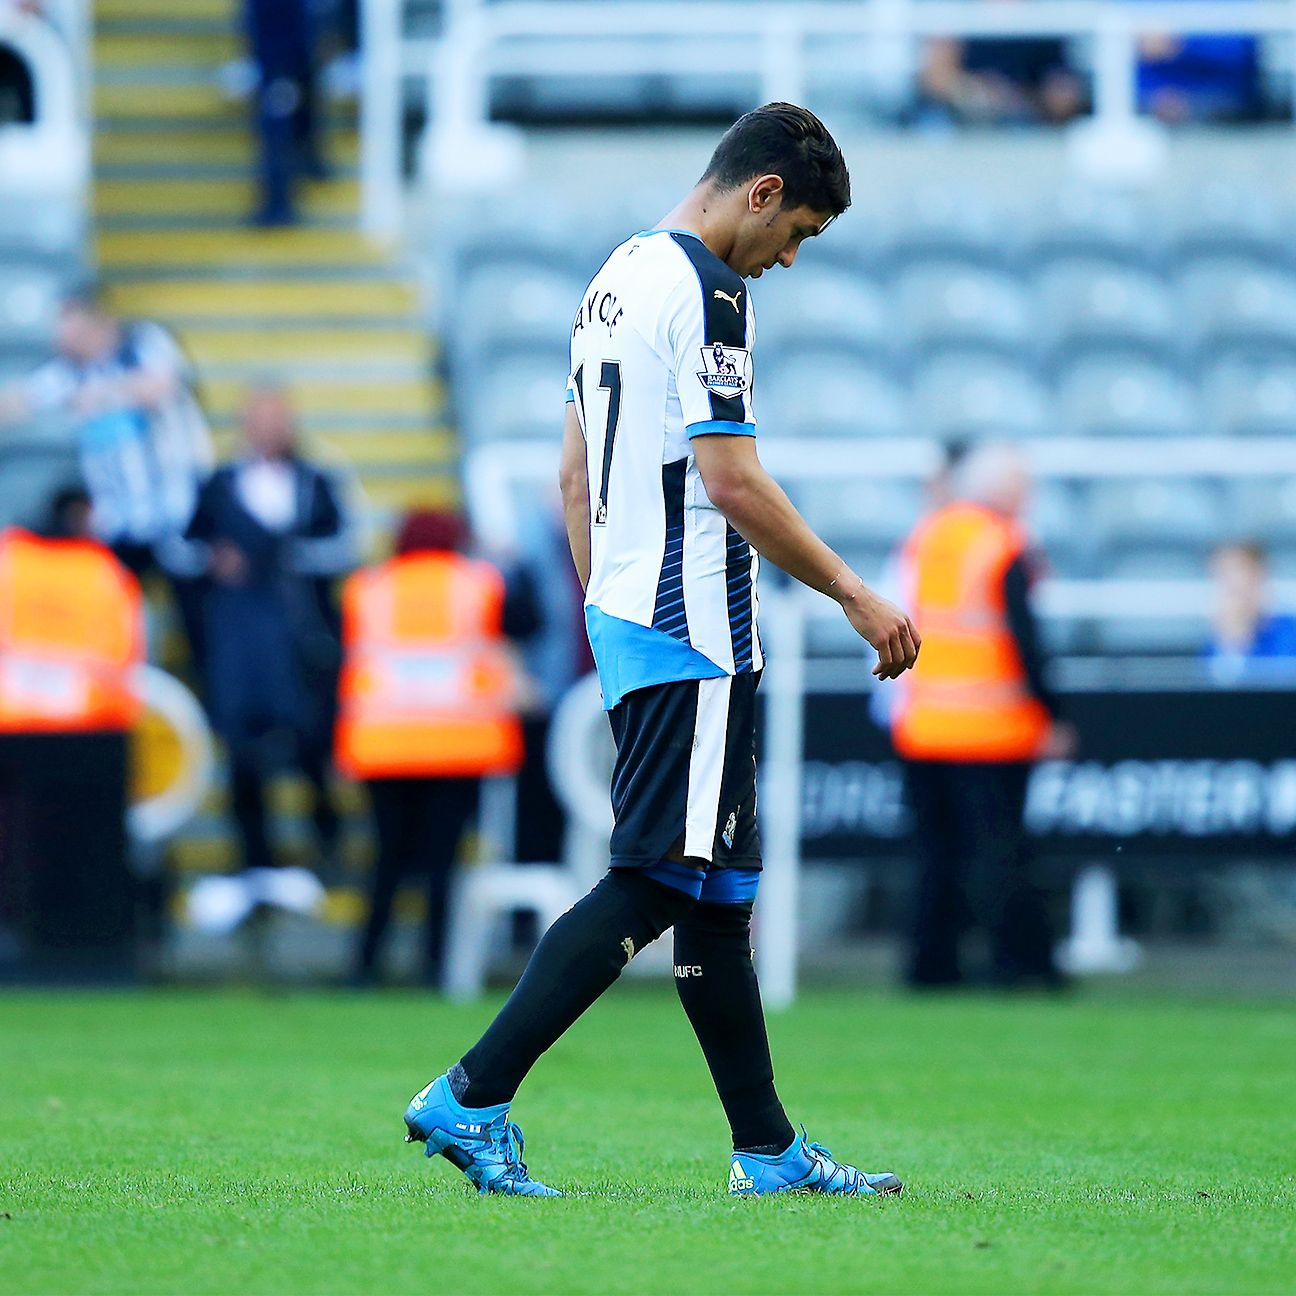 It was another dismal day for Ayoze Perez and Newcastle after falling to Watford.